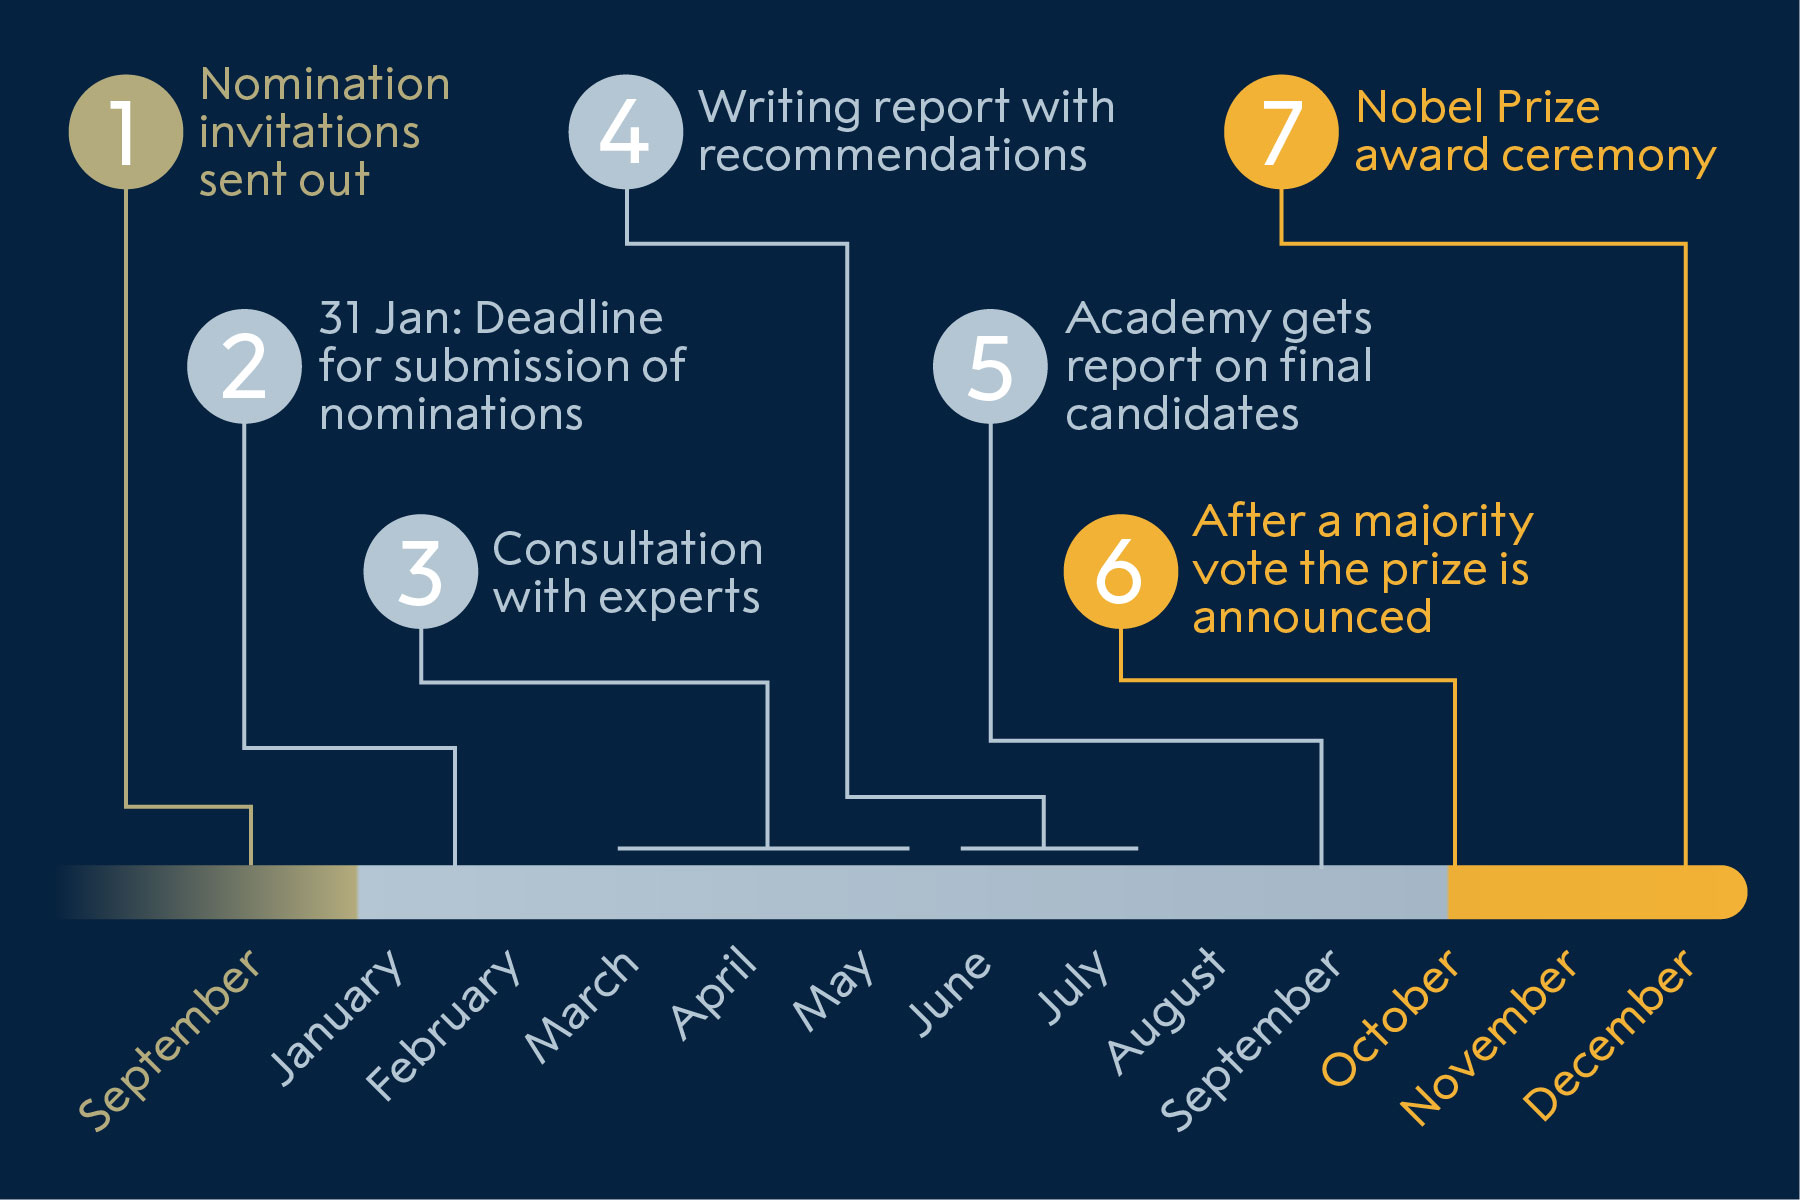 The nomination process for Laureates in Economic Sciences